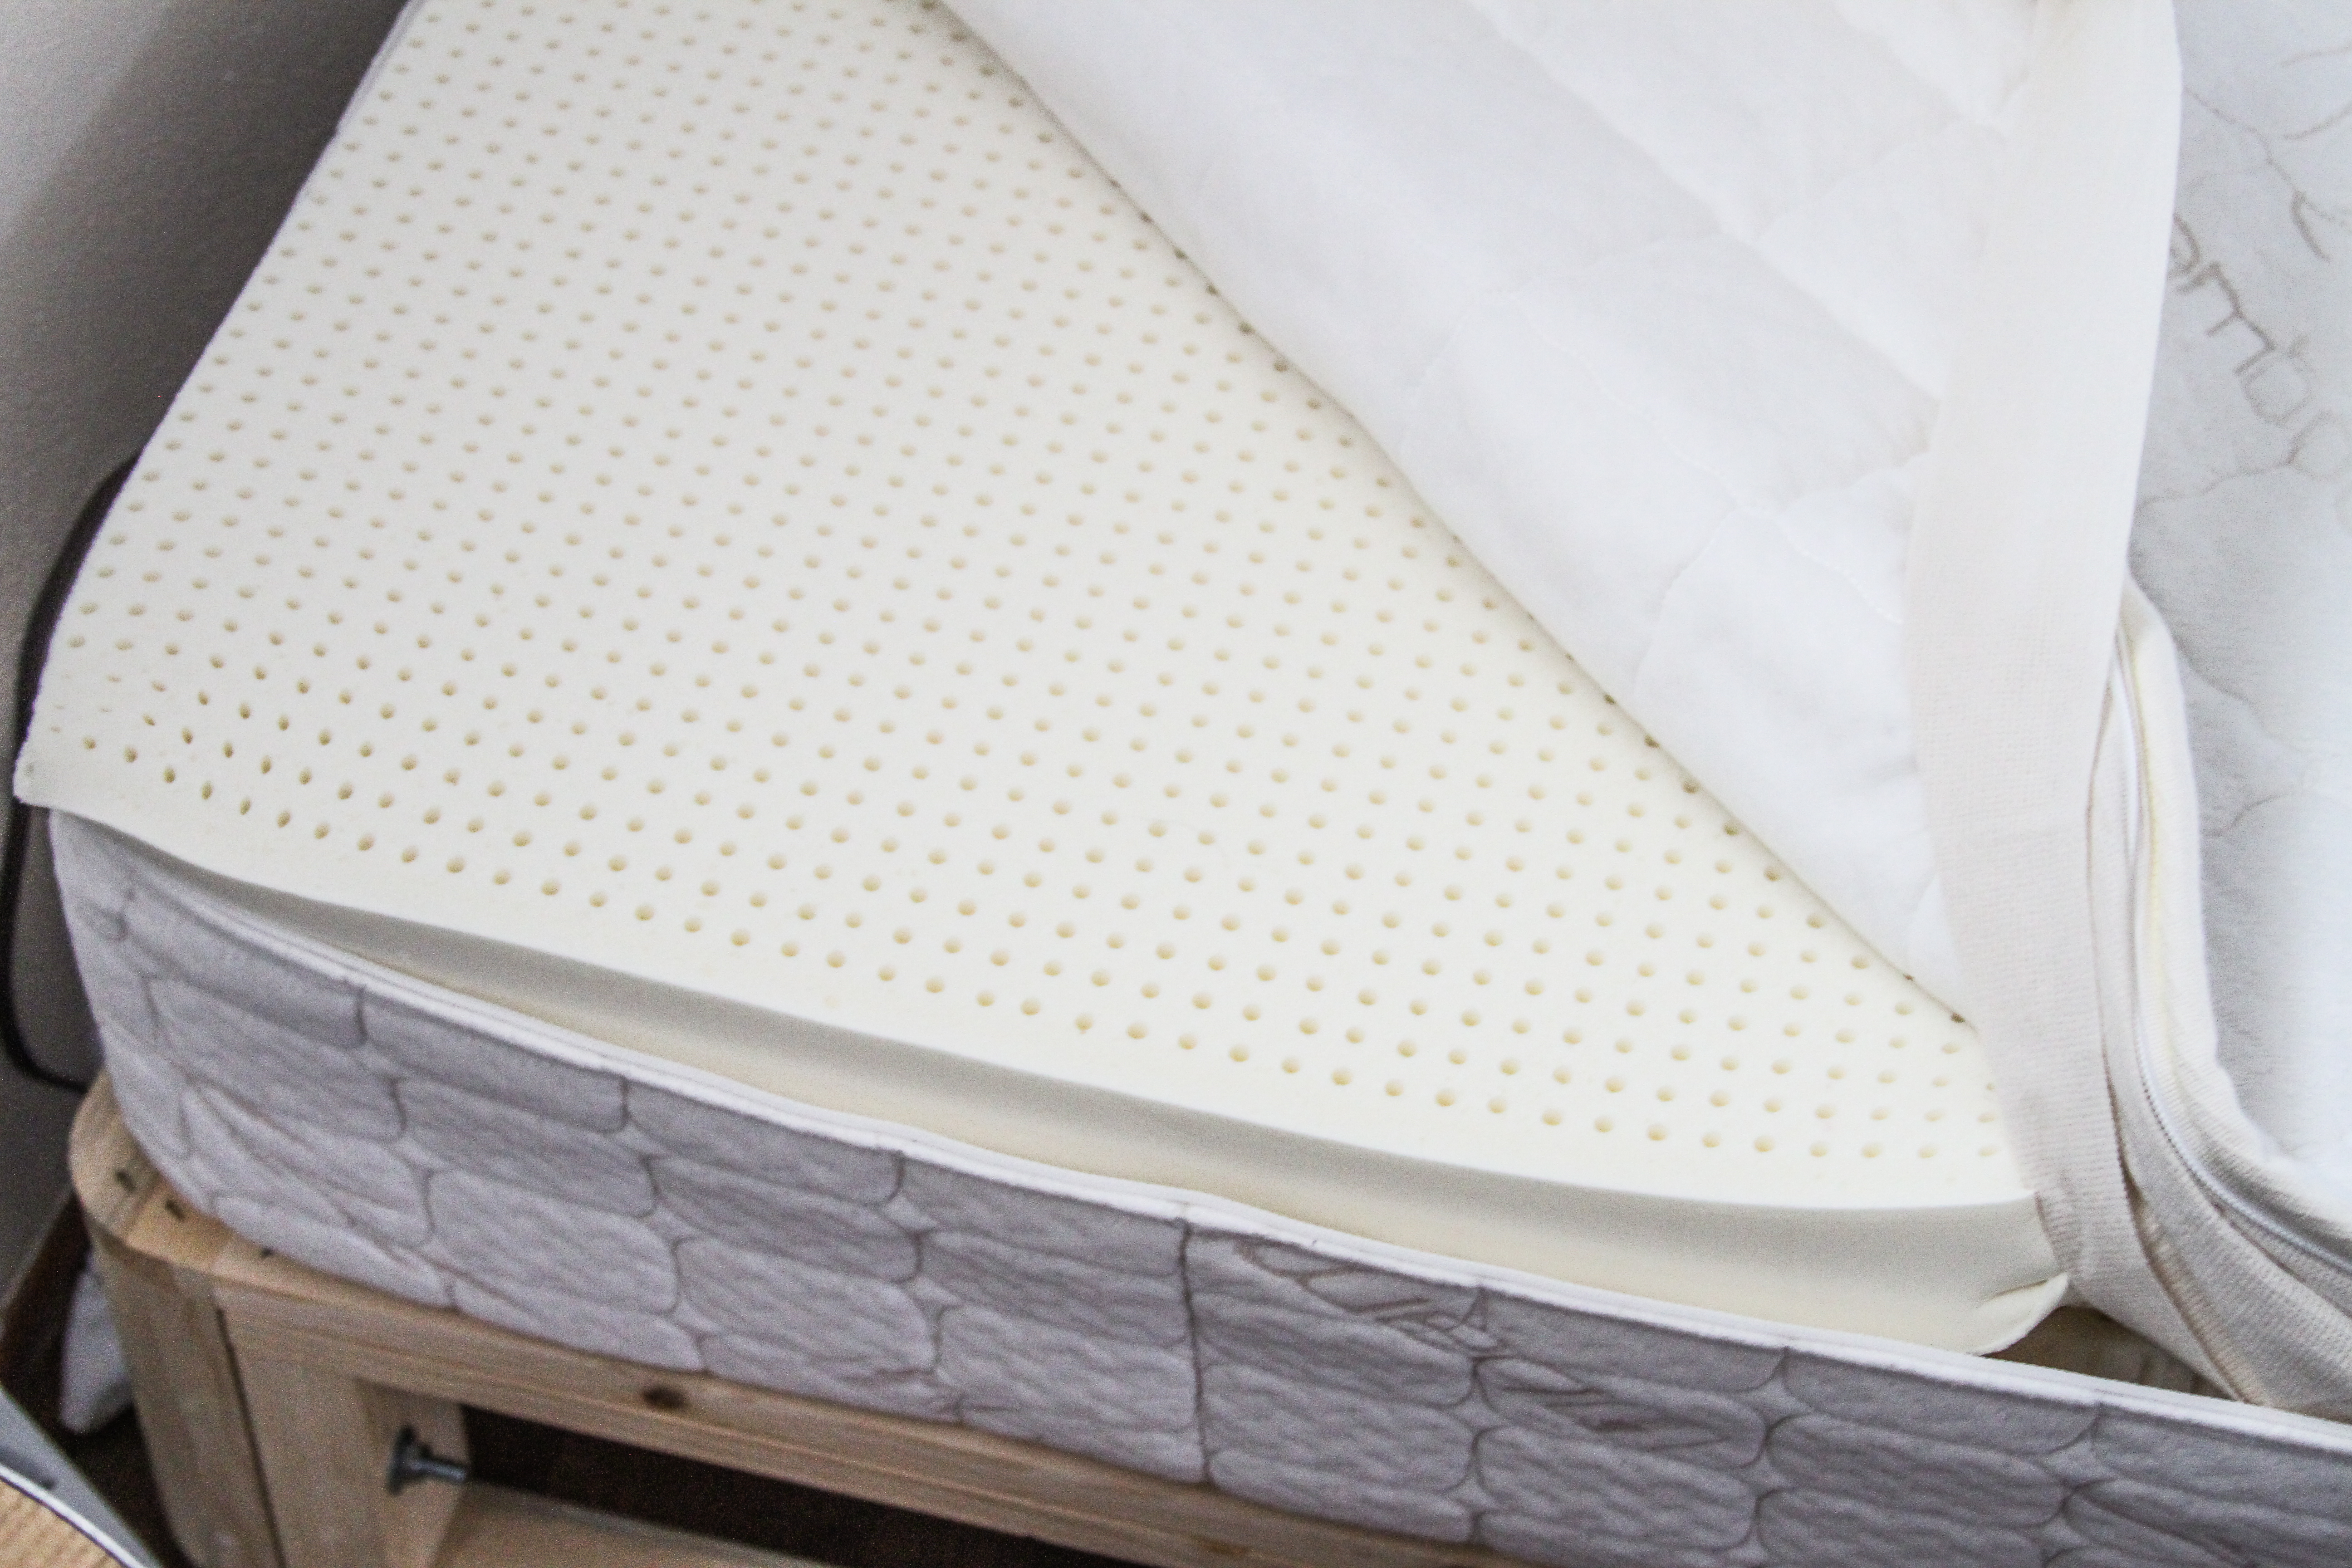 "Where To Buy 4"" TWIN SIZE COMFORT SELECT 5.5 MEMORY FOAM MATTRESS PAD BED TOPPER"